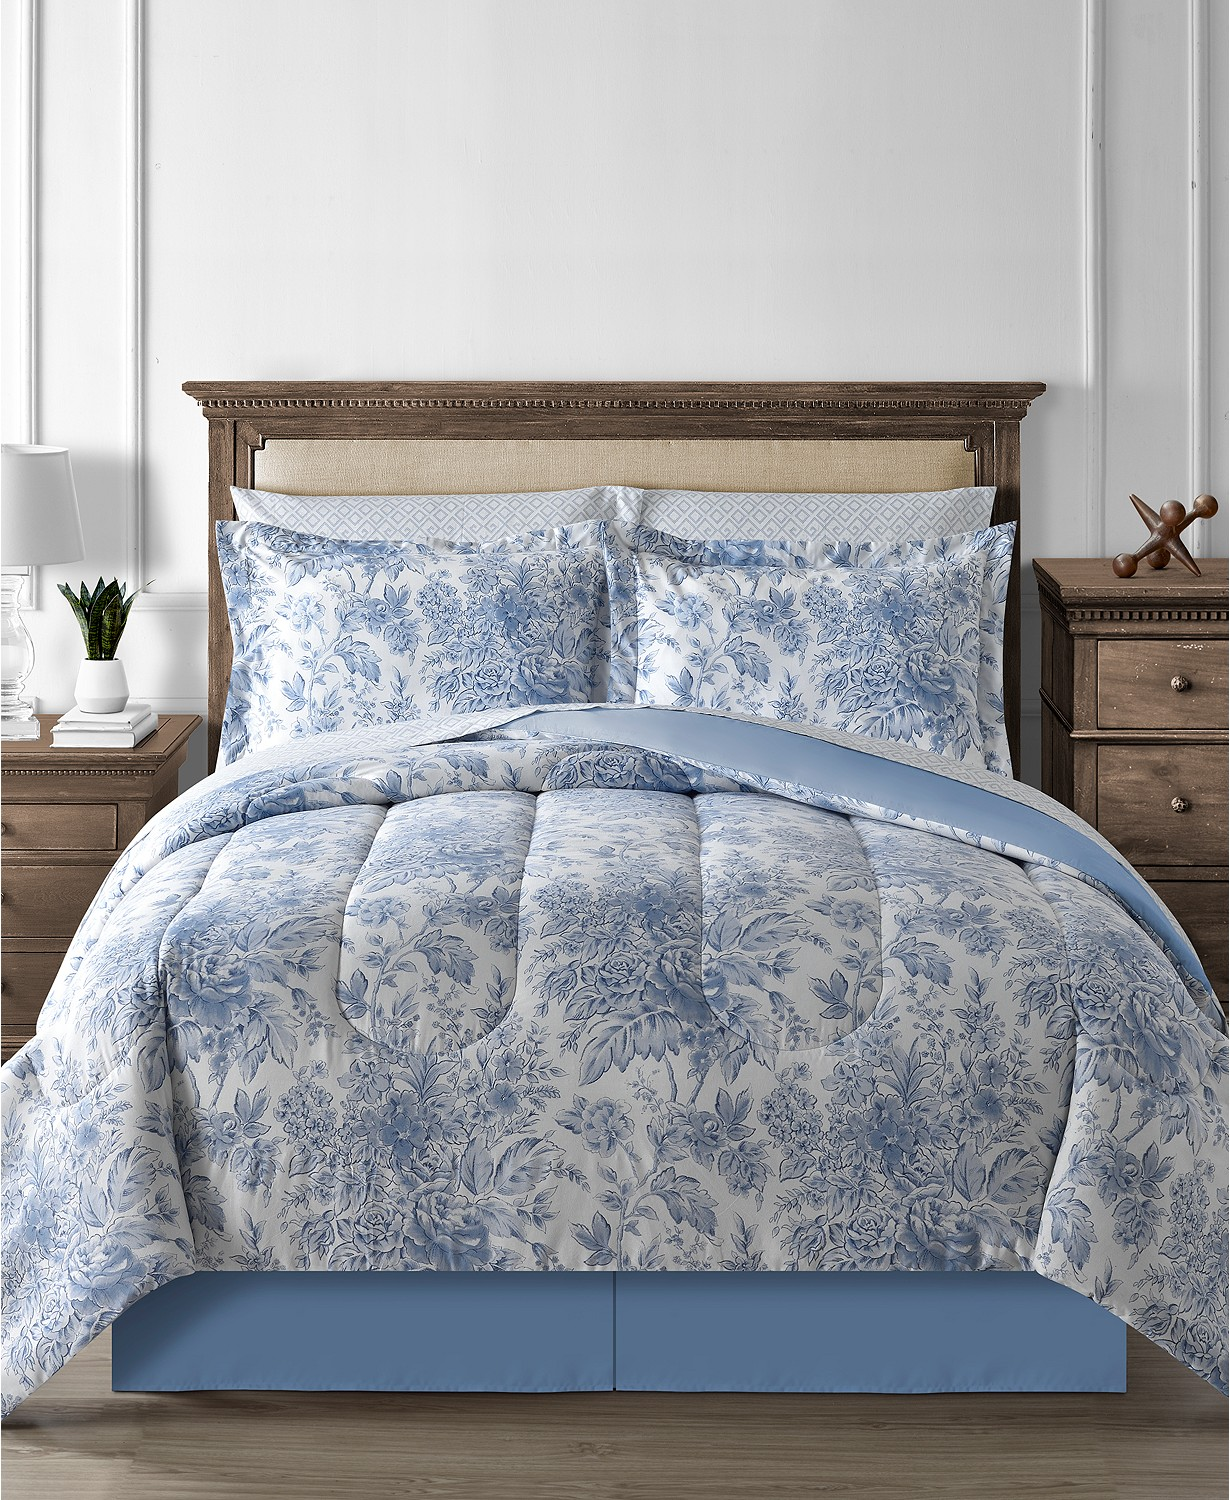 Fairfield Square Collection Floral Toile 8-Pc. King Reversible Comforter Set